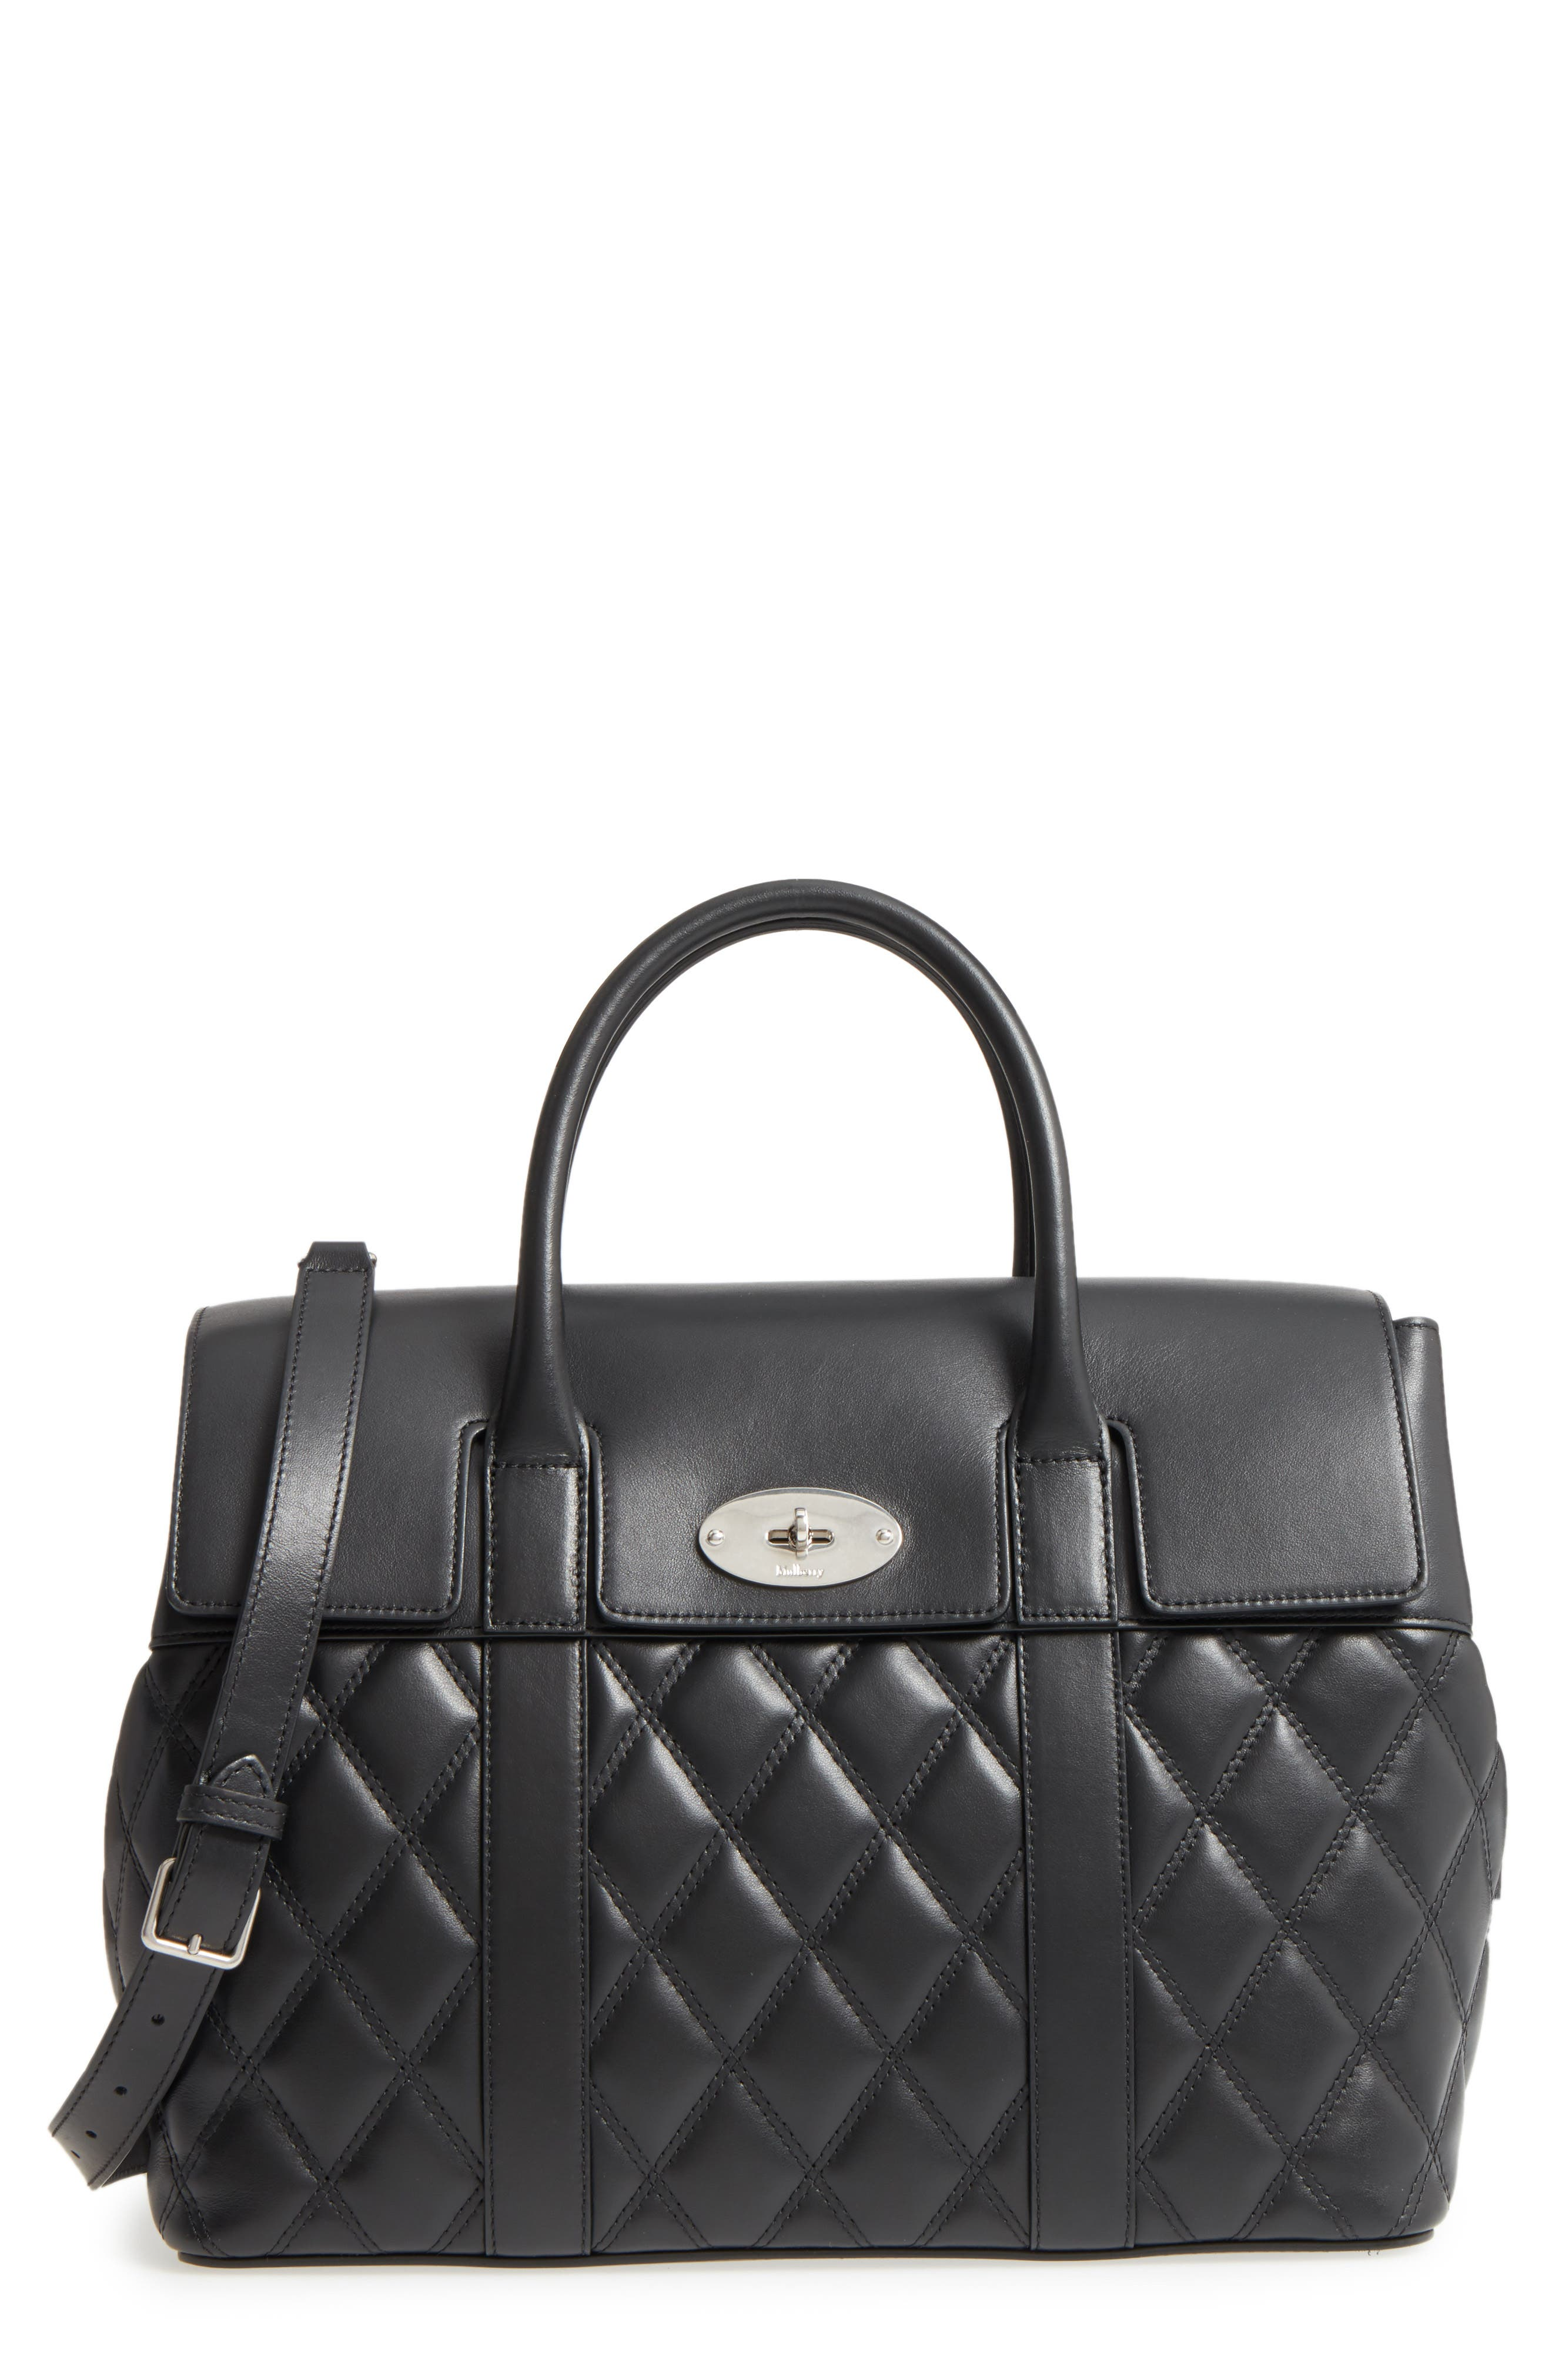 Mulberry Bayswater Quilted Calfskin Leather Satchel